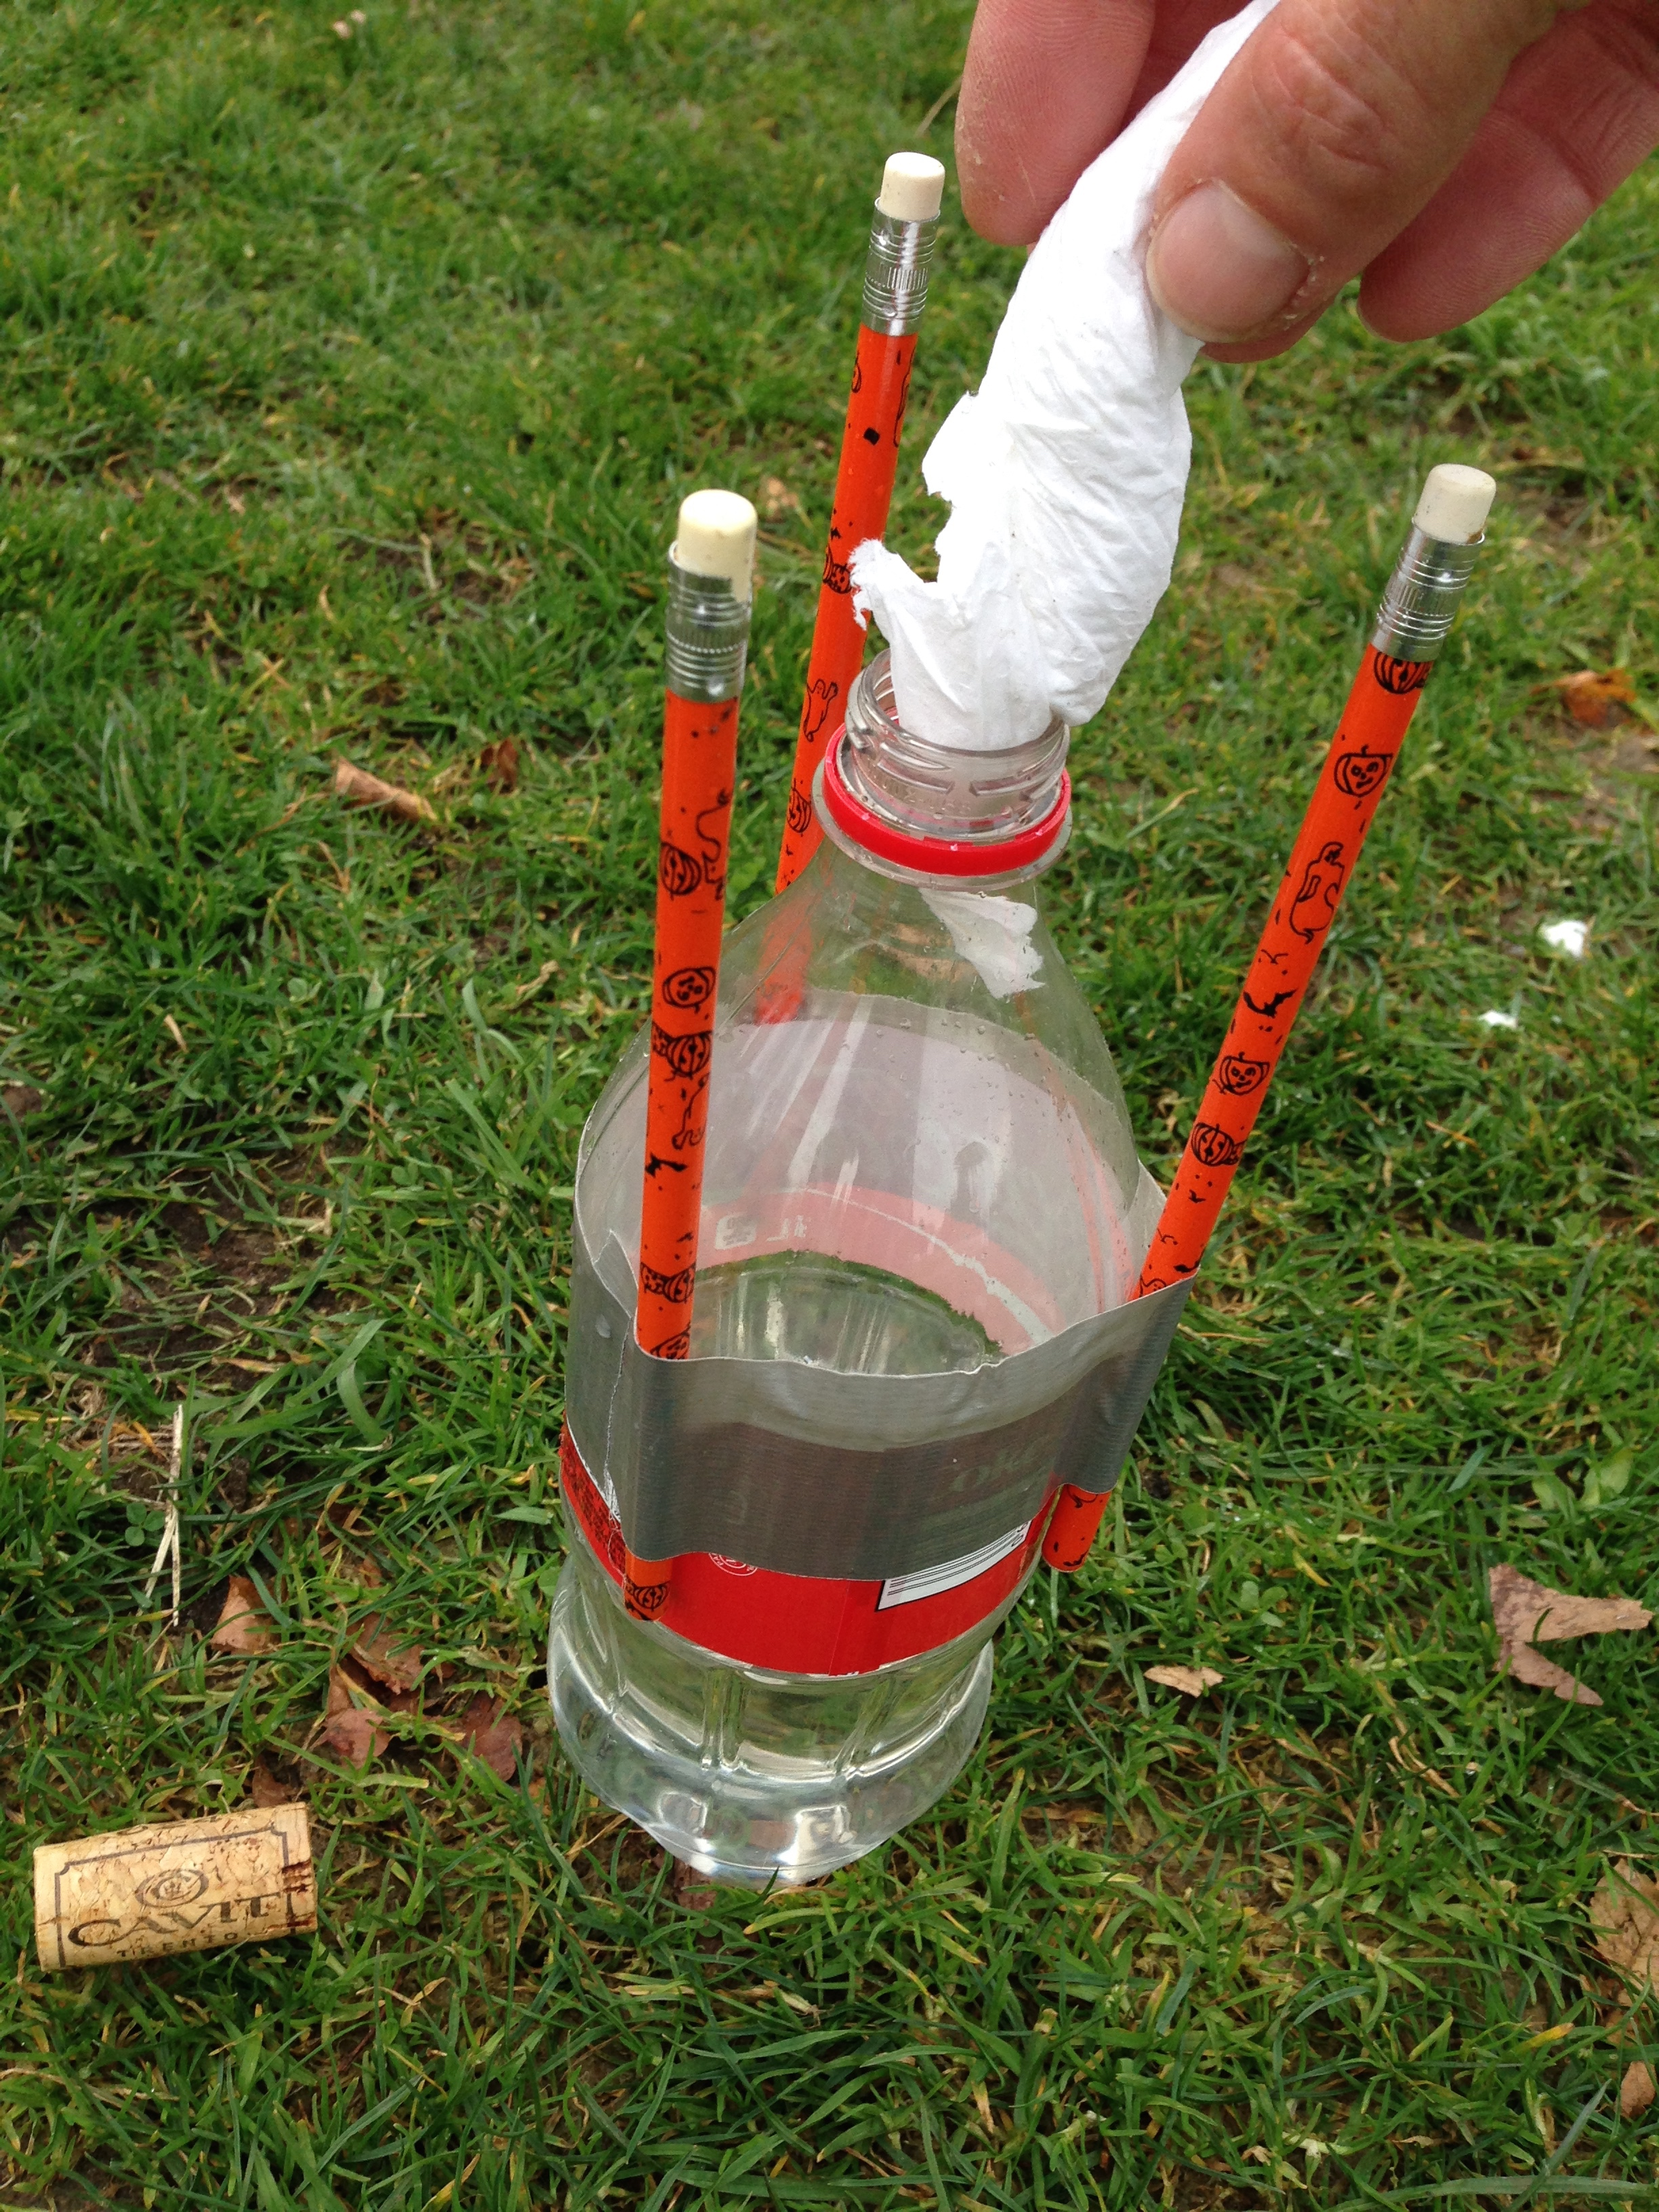 Rocket powered by baking soda and vinegar (demonstration